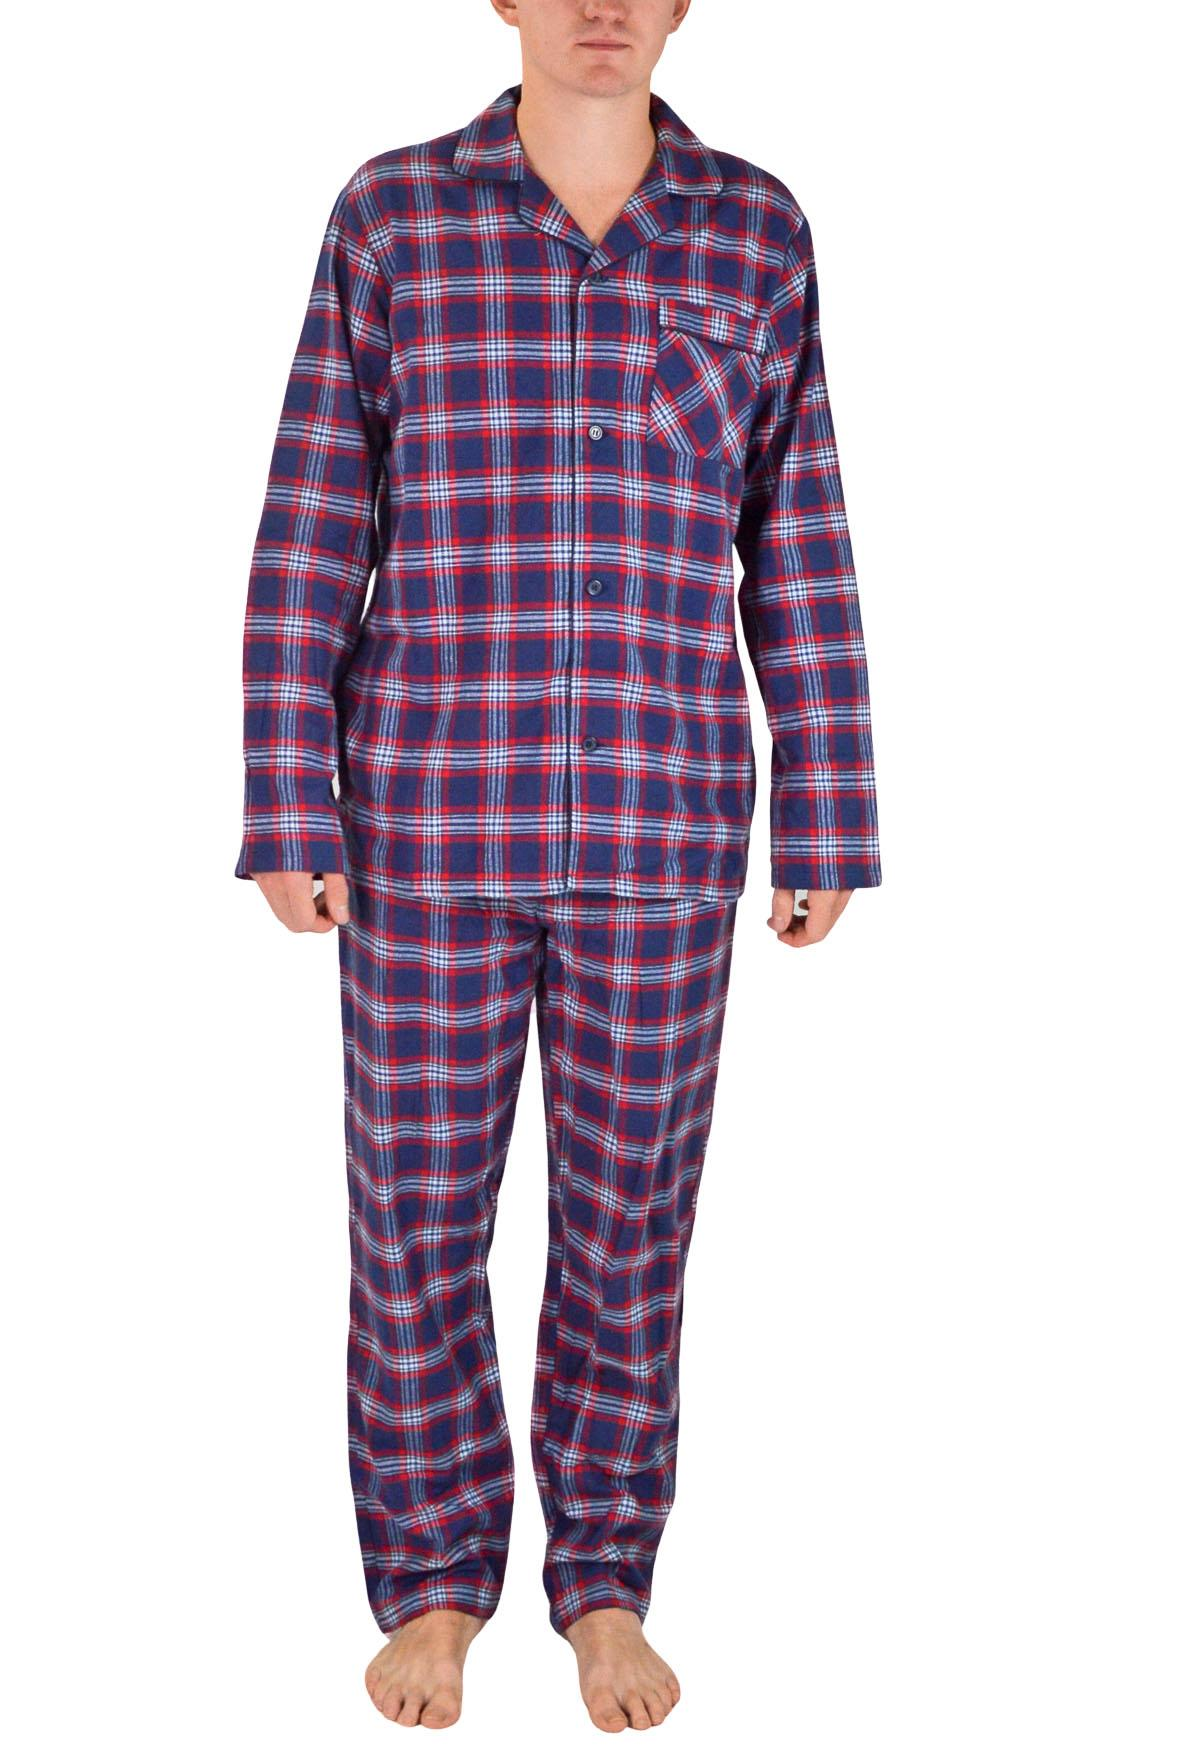 NEW-Mens-Brushed-Pure-Cotton-Check-Pyjamas-Flannelette-PJ-Set-in-Blue-Red-Grey thumbnail 13